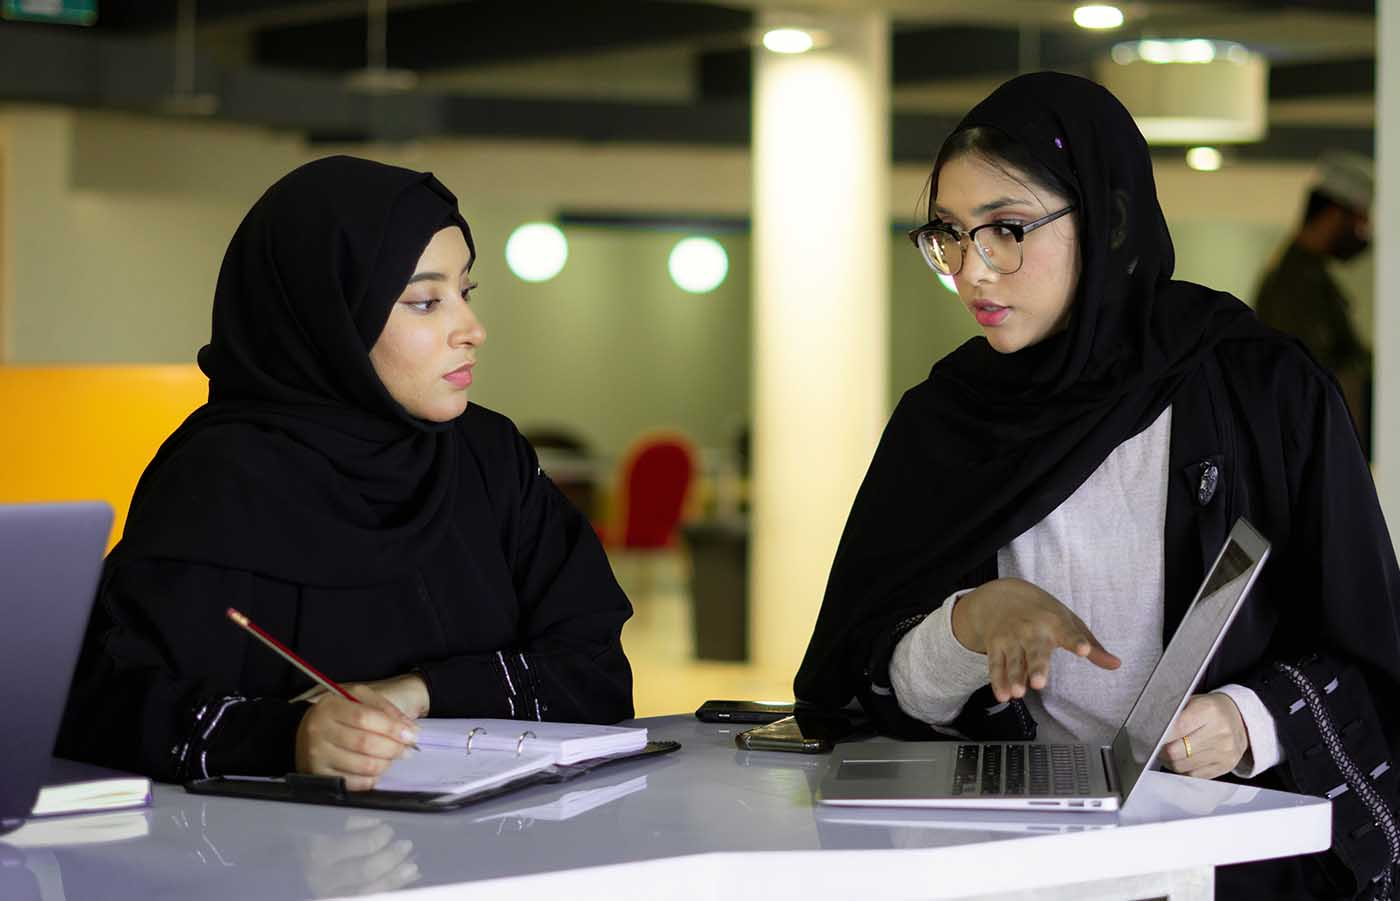 Study top courses at one of the best colleges in Oman